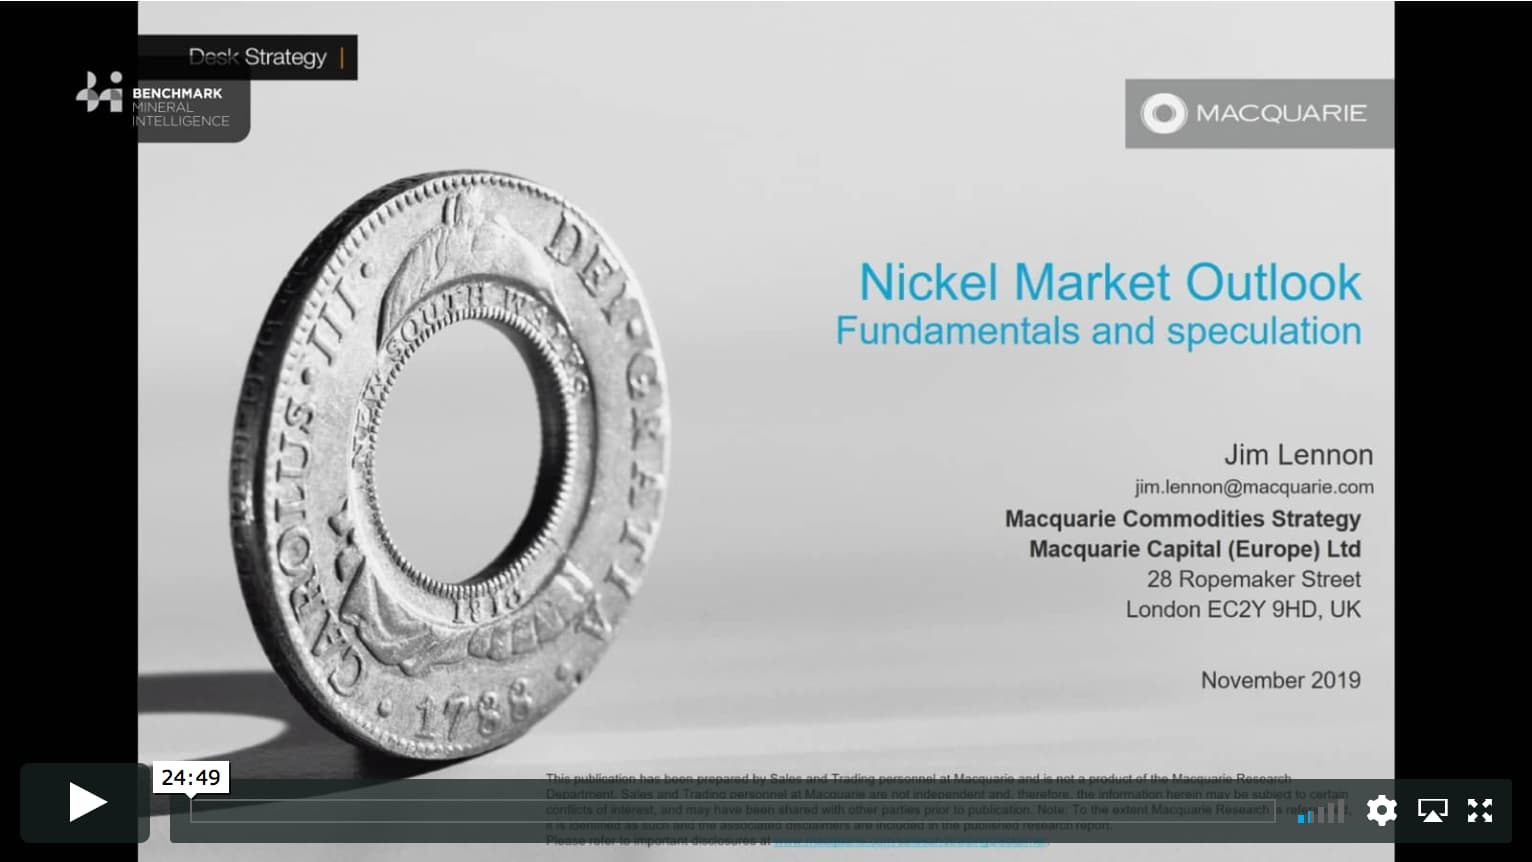 Nickel market outlook: fundamentals and speculation